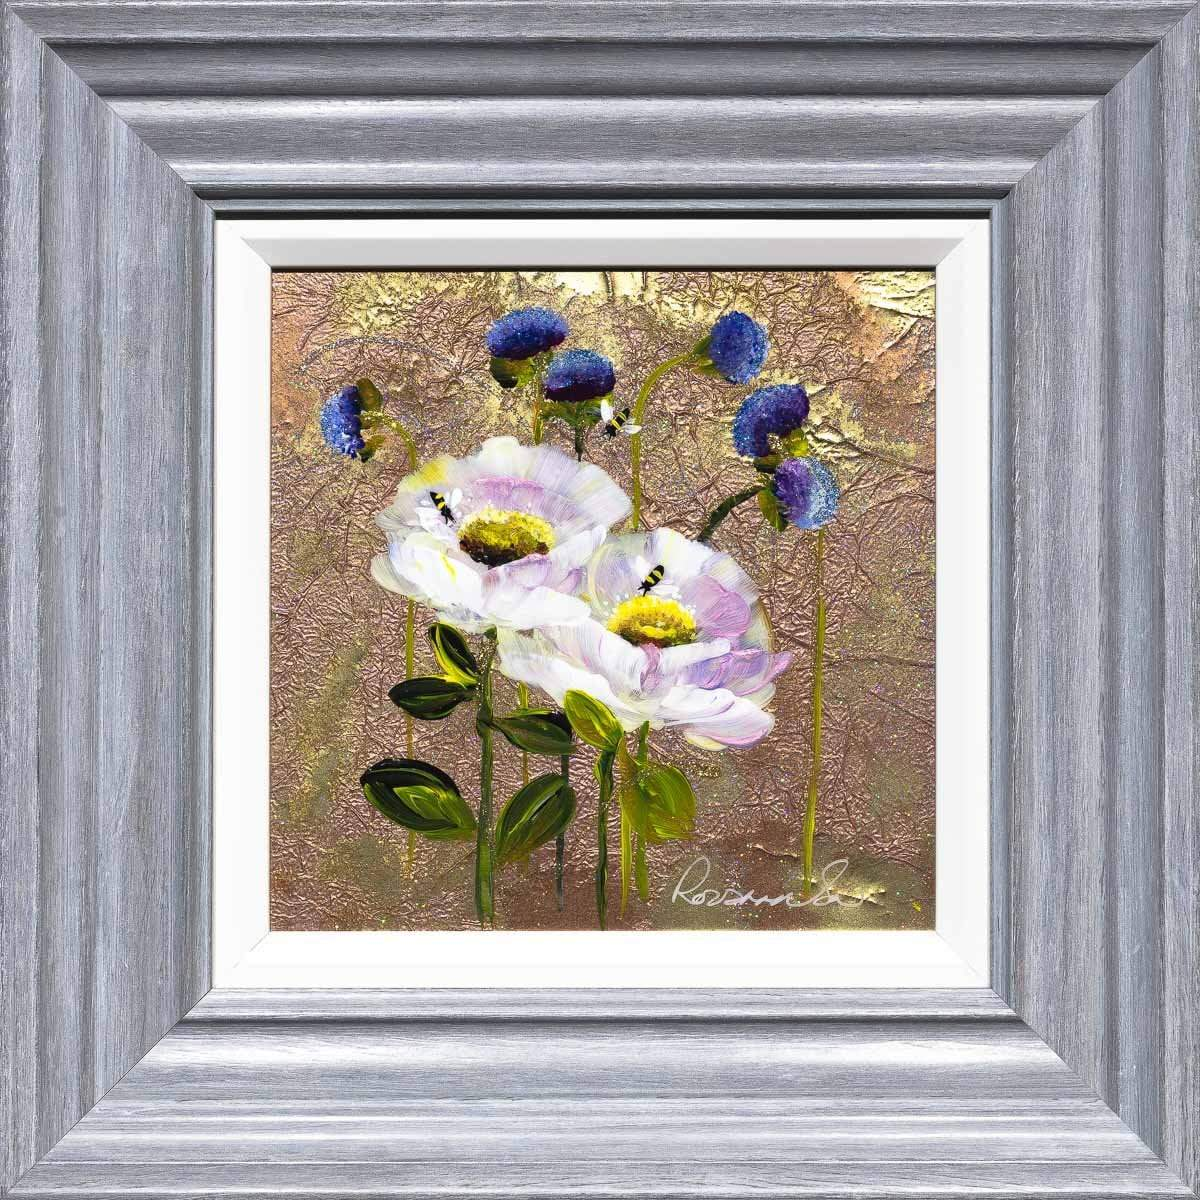 Floral Fancy - Original Rozanne Bell Framed